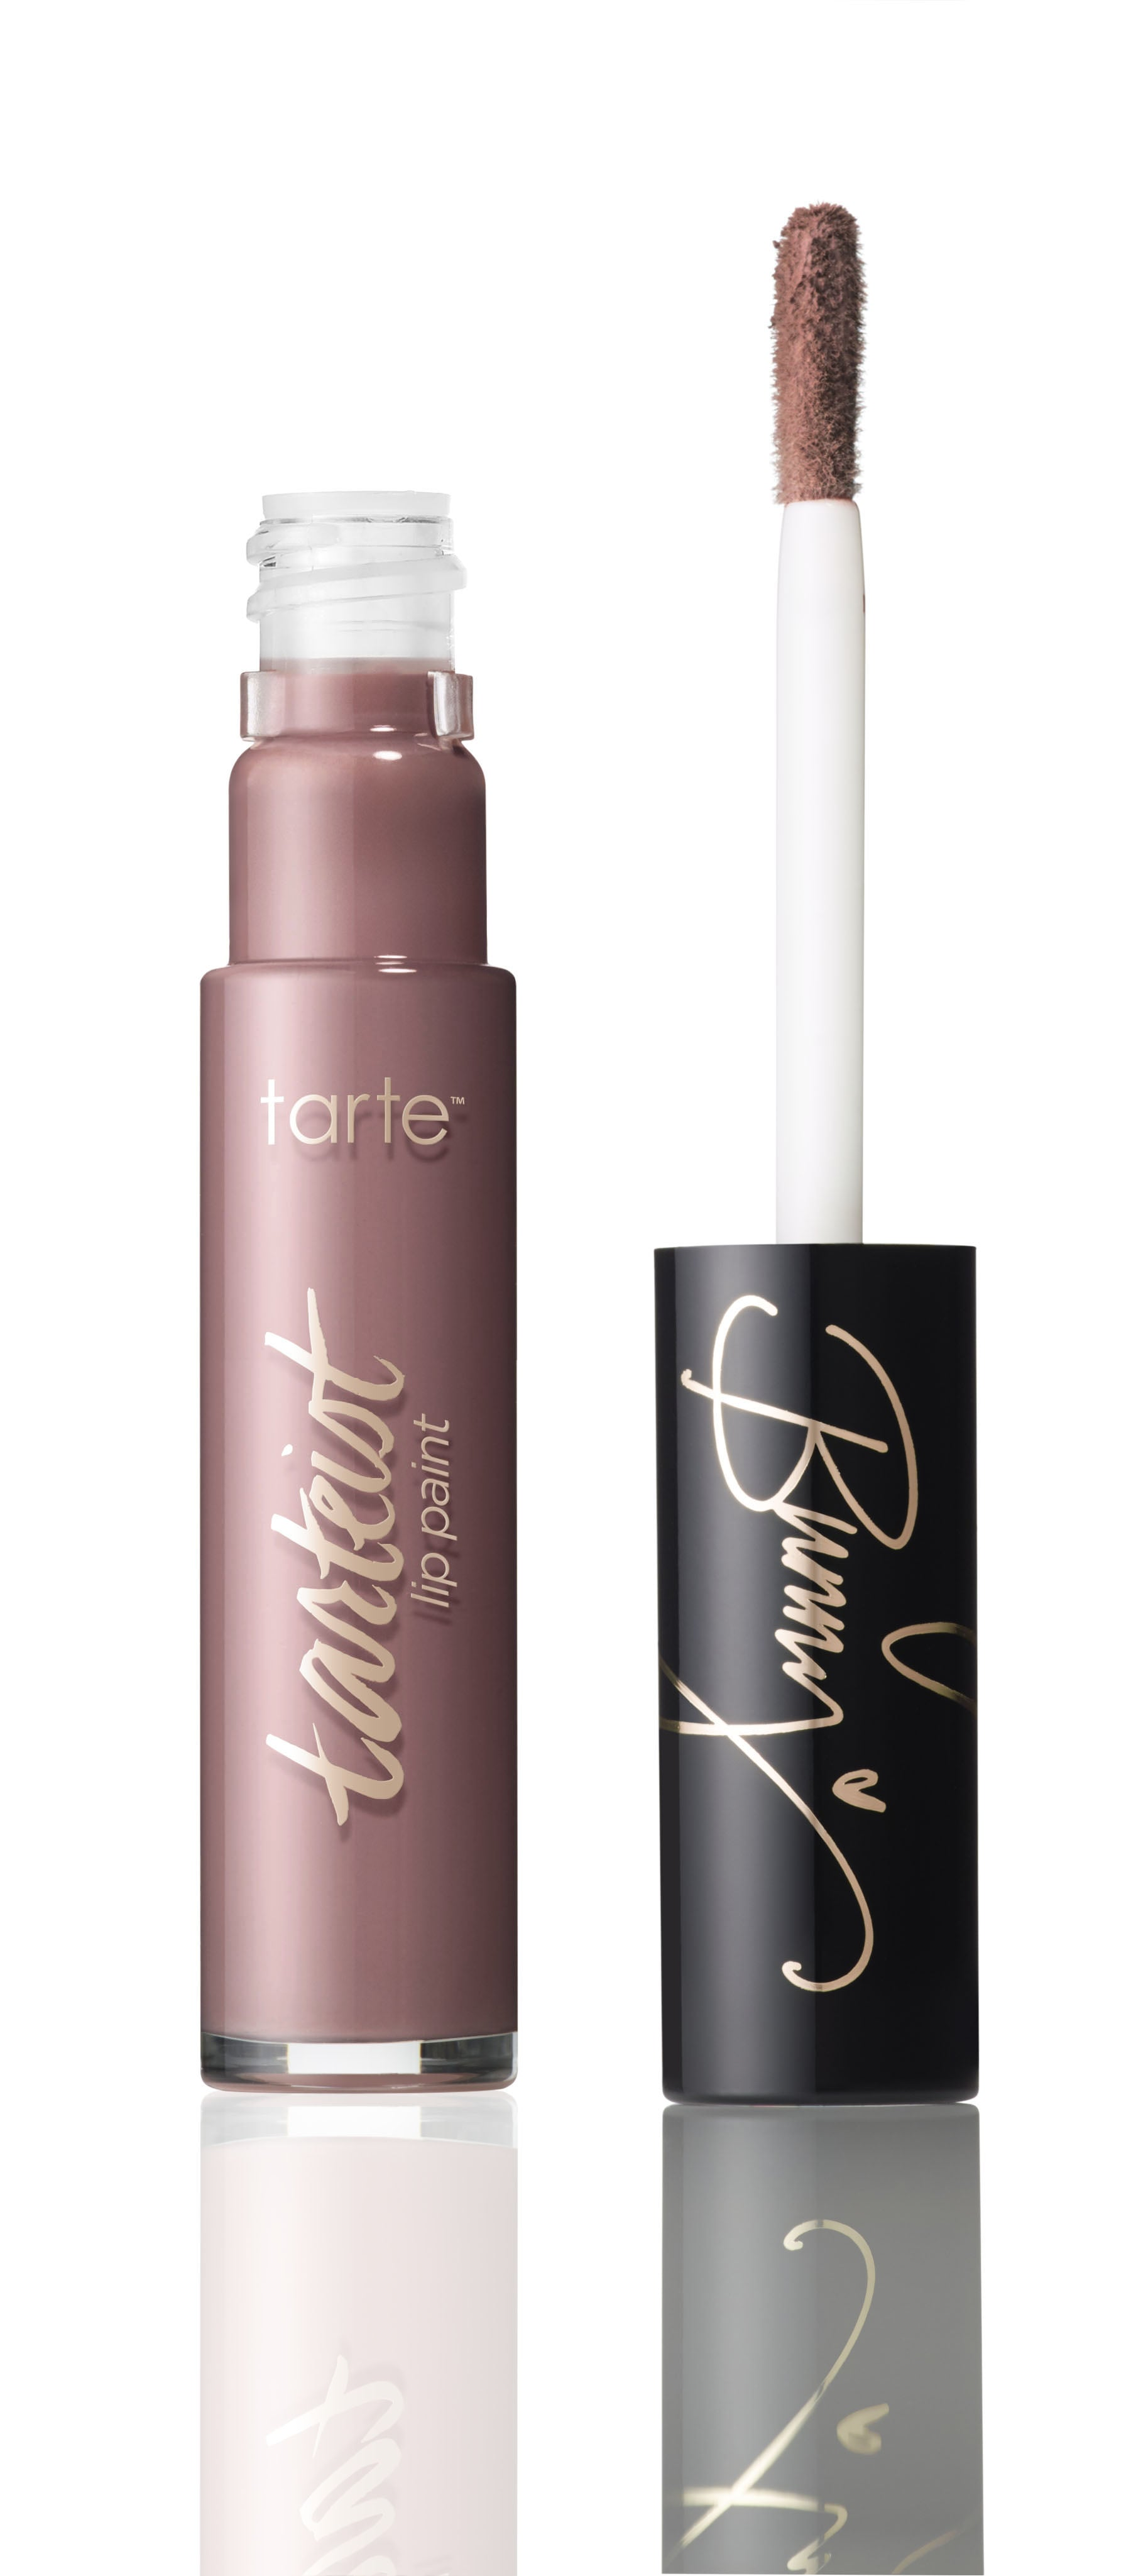 Tarte Makeup Brushes